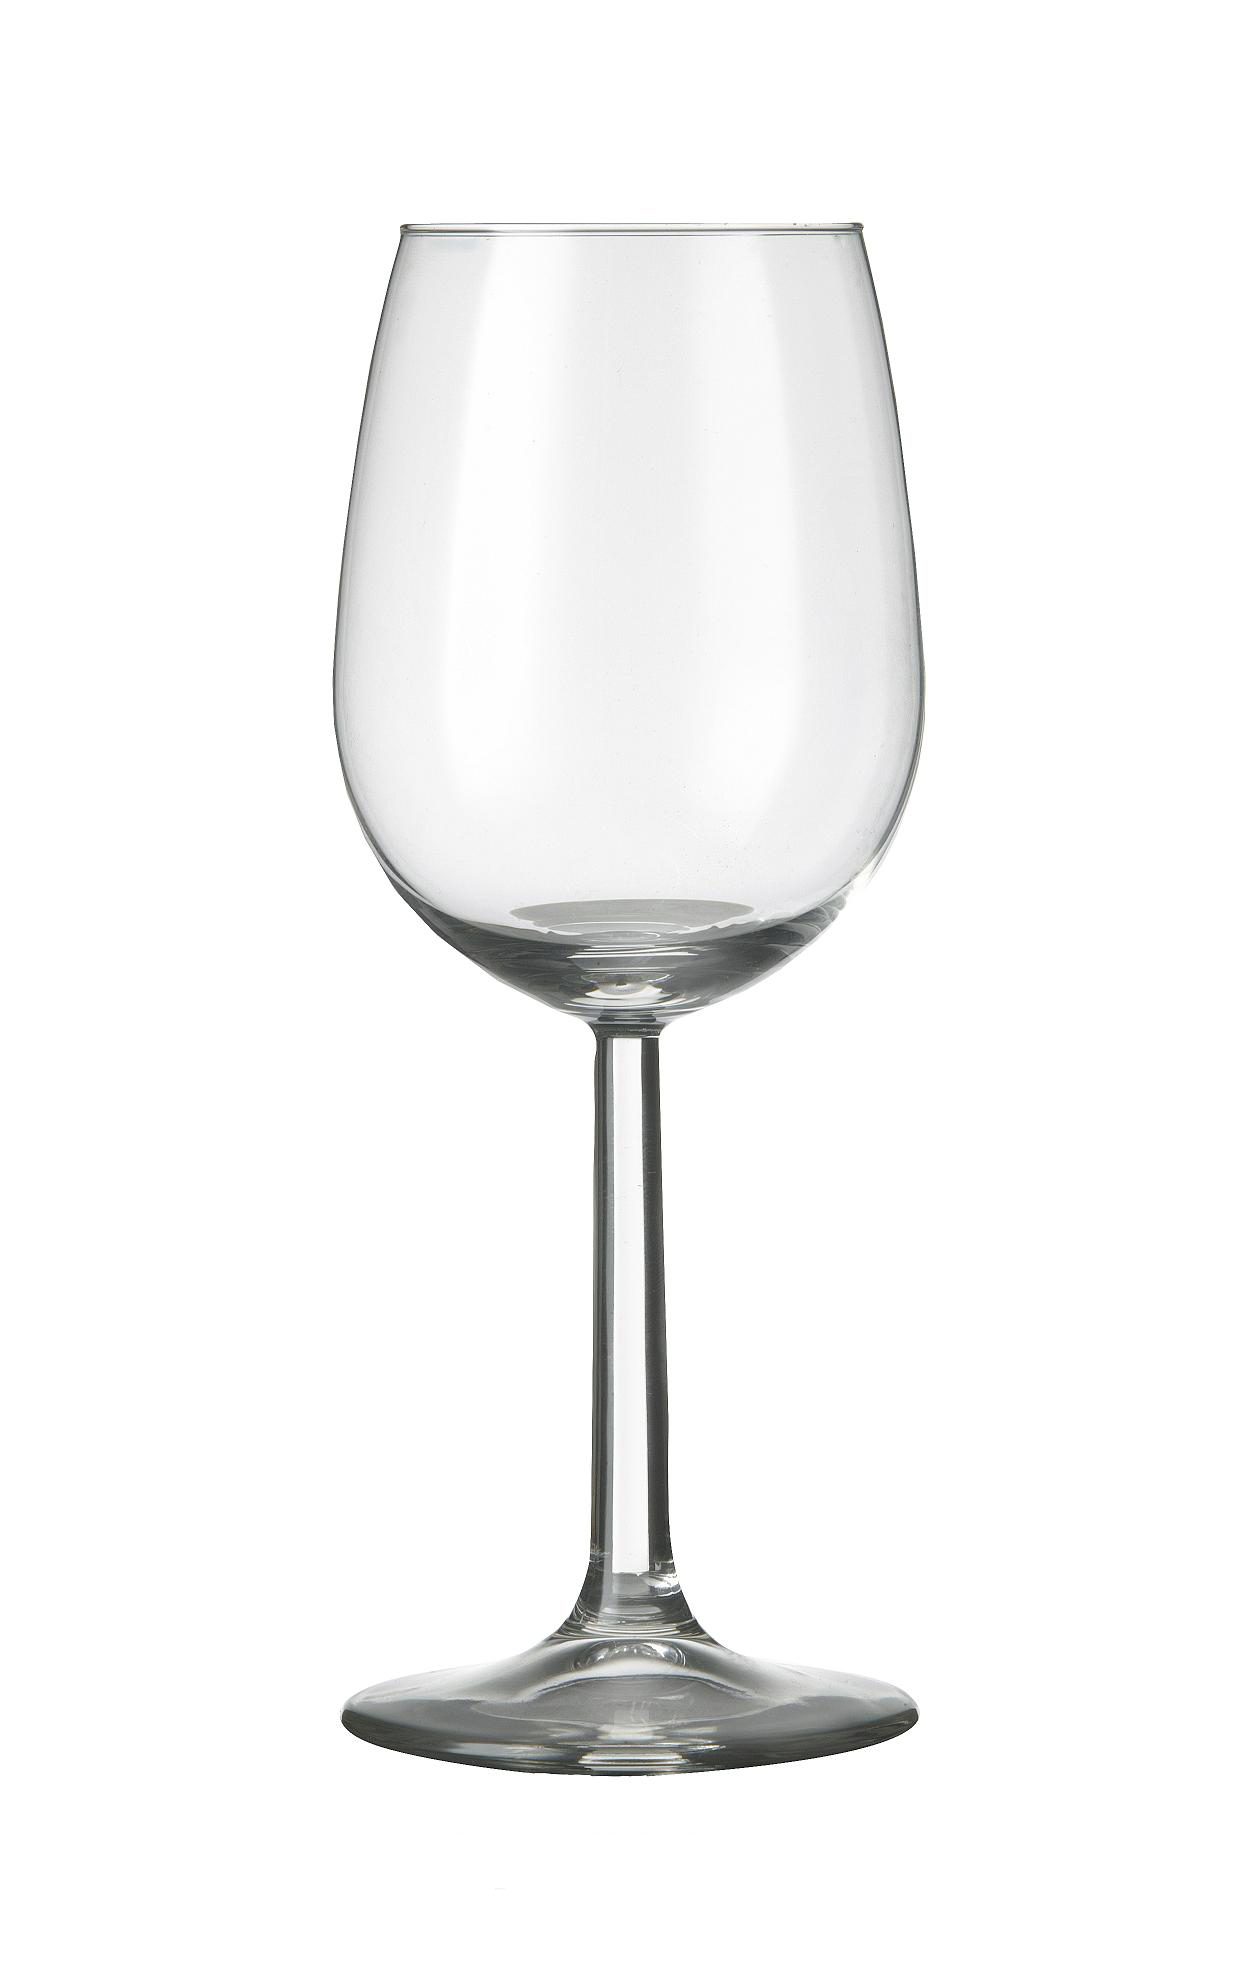 royal_leerdam_wijnglas_bouquet_23cl.jpg